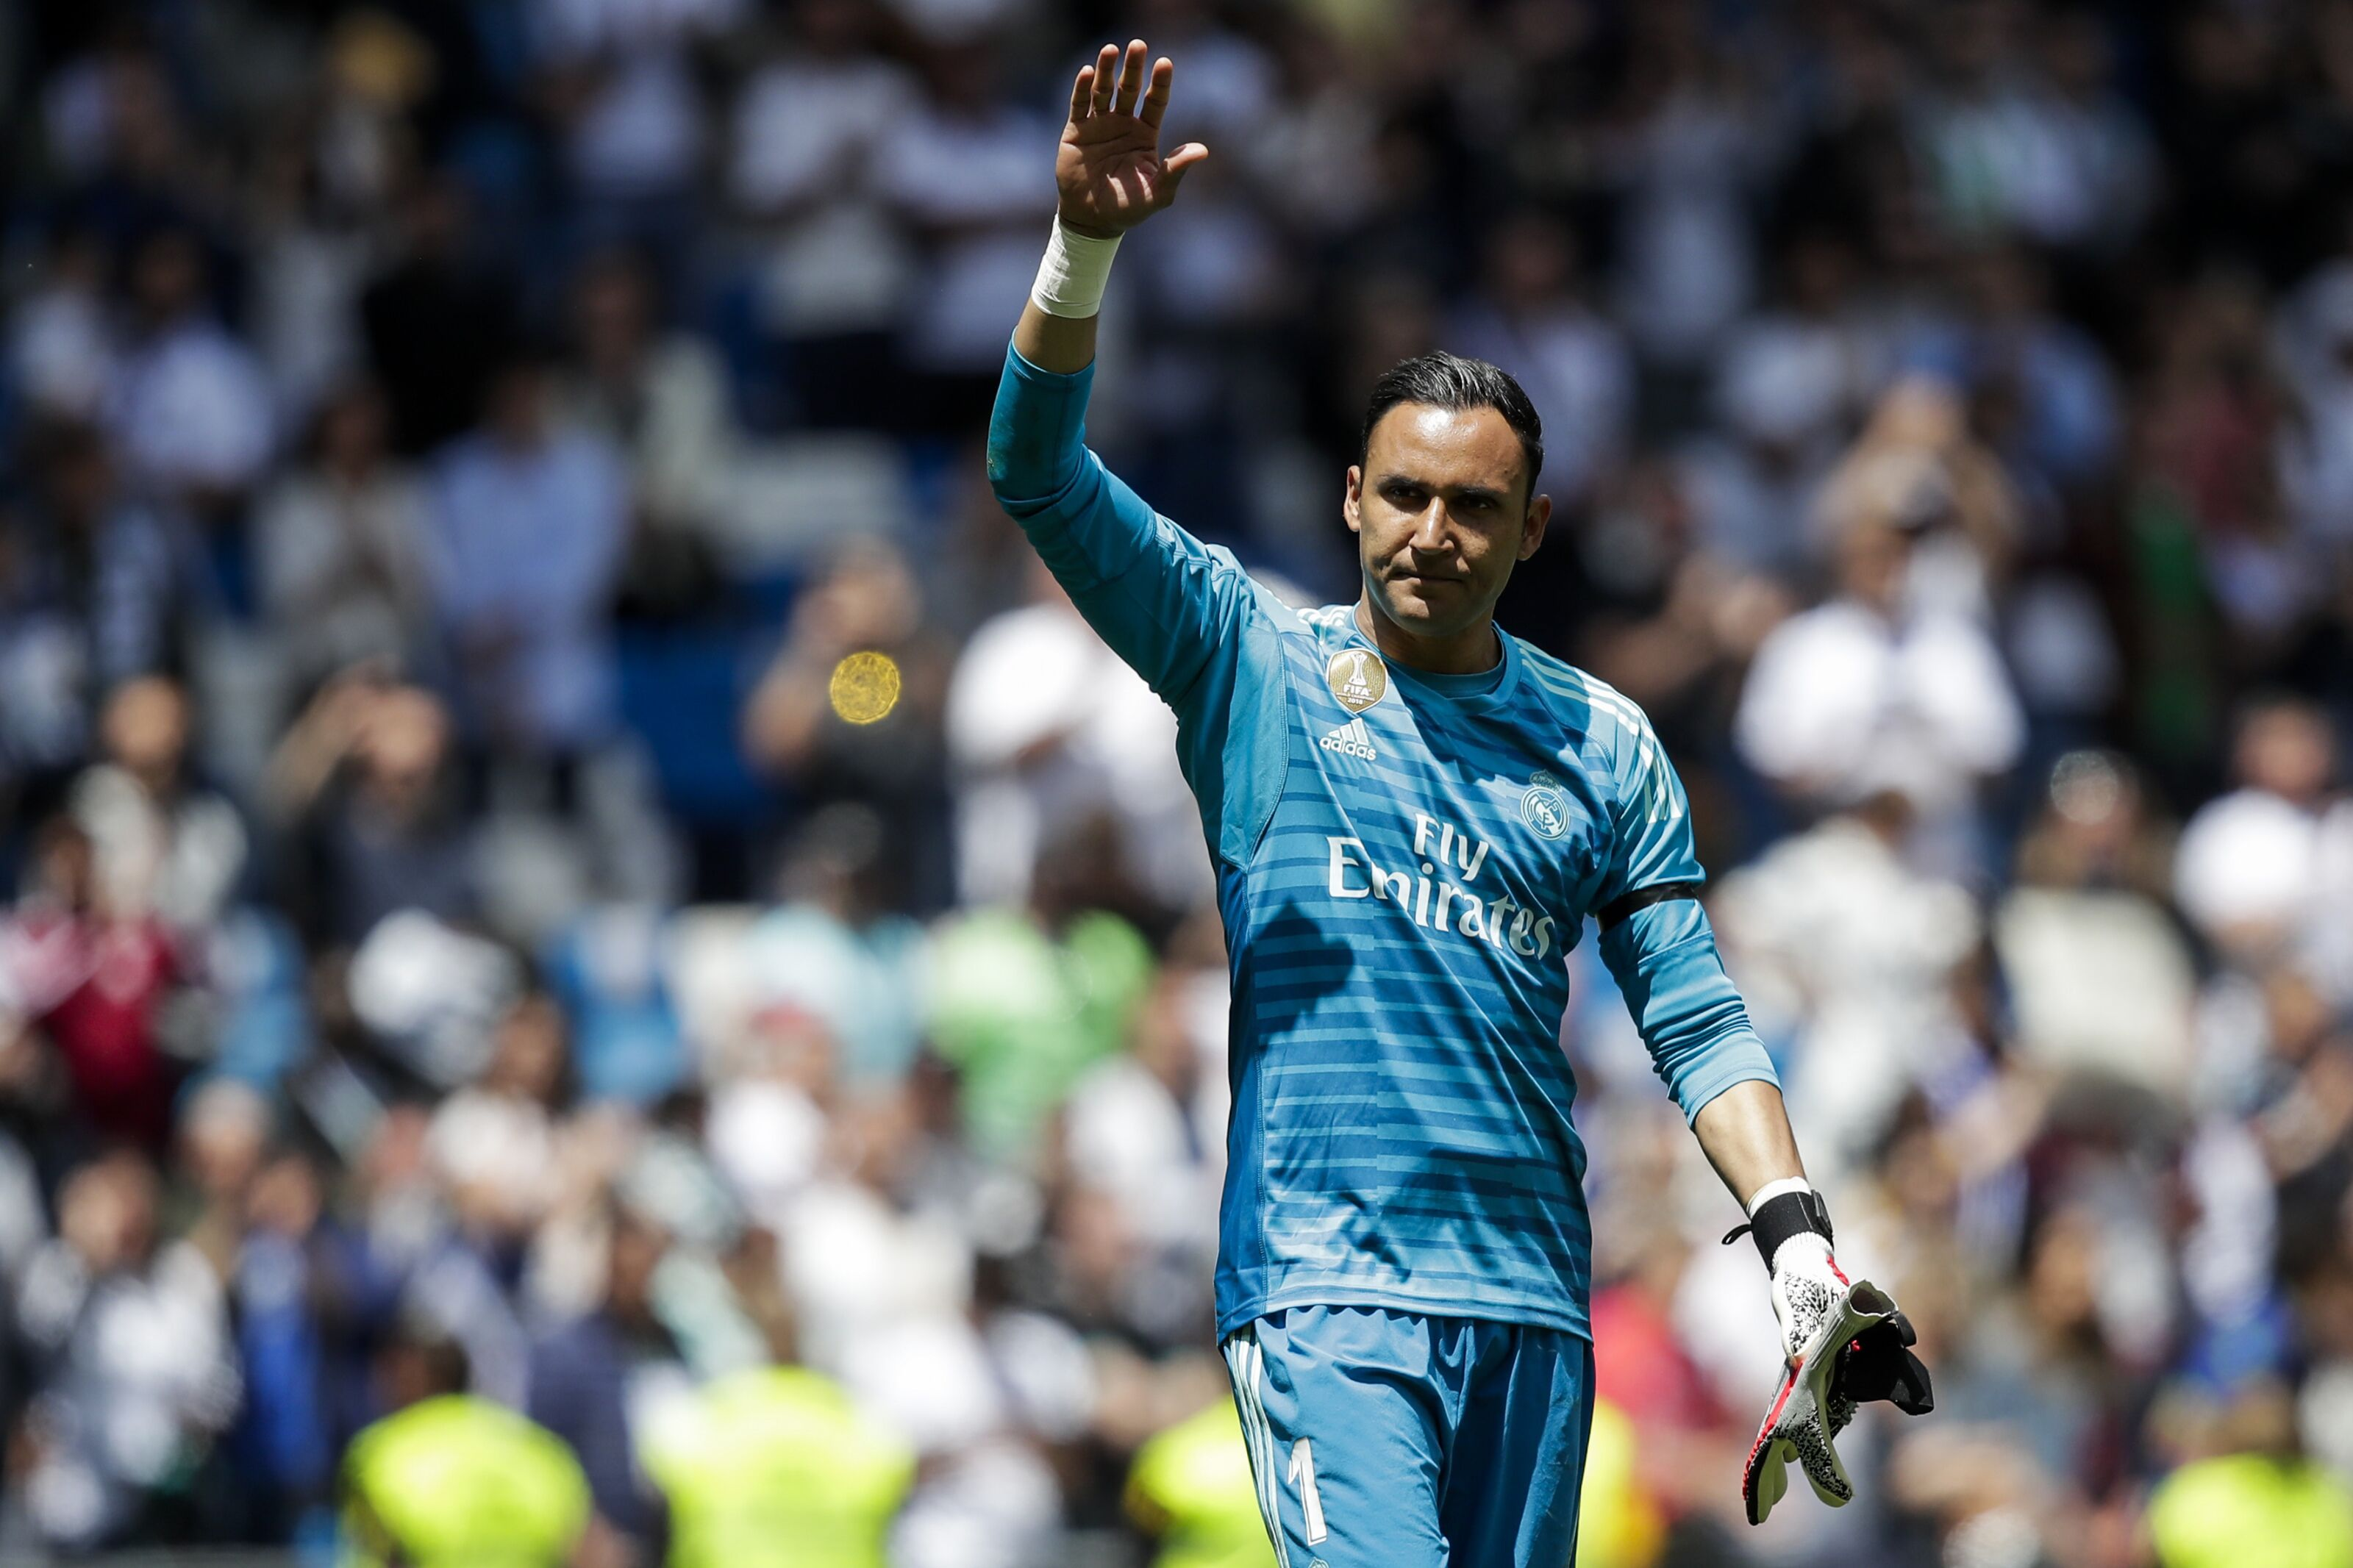 Keylor Navas looking for move away from Real Madrid